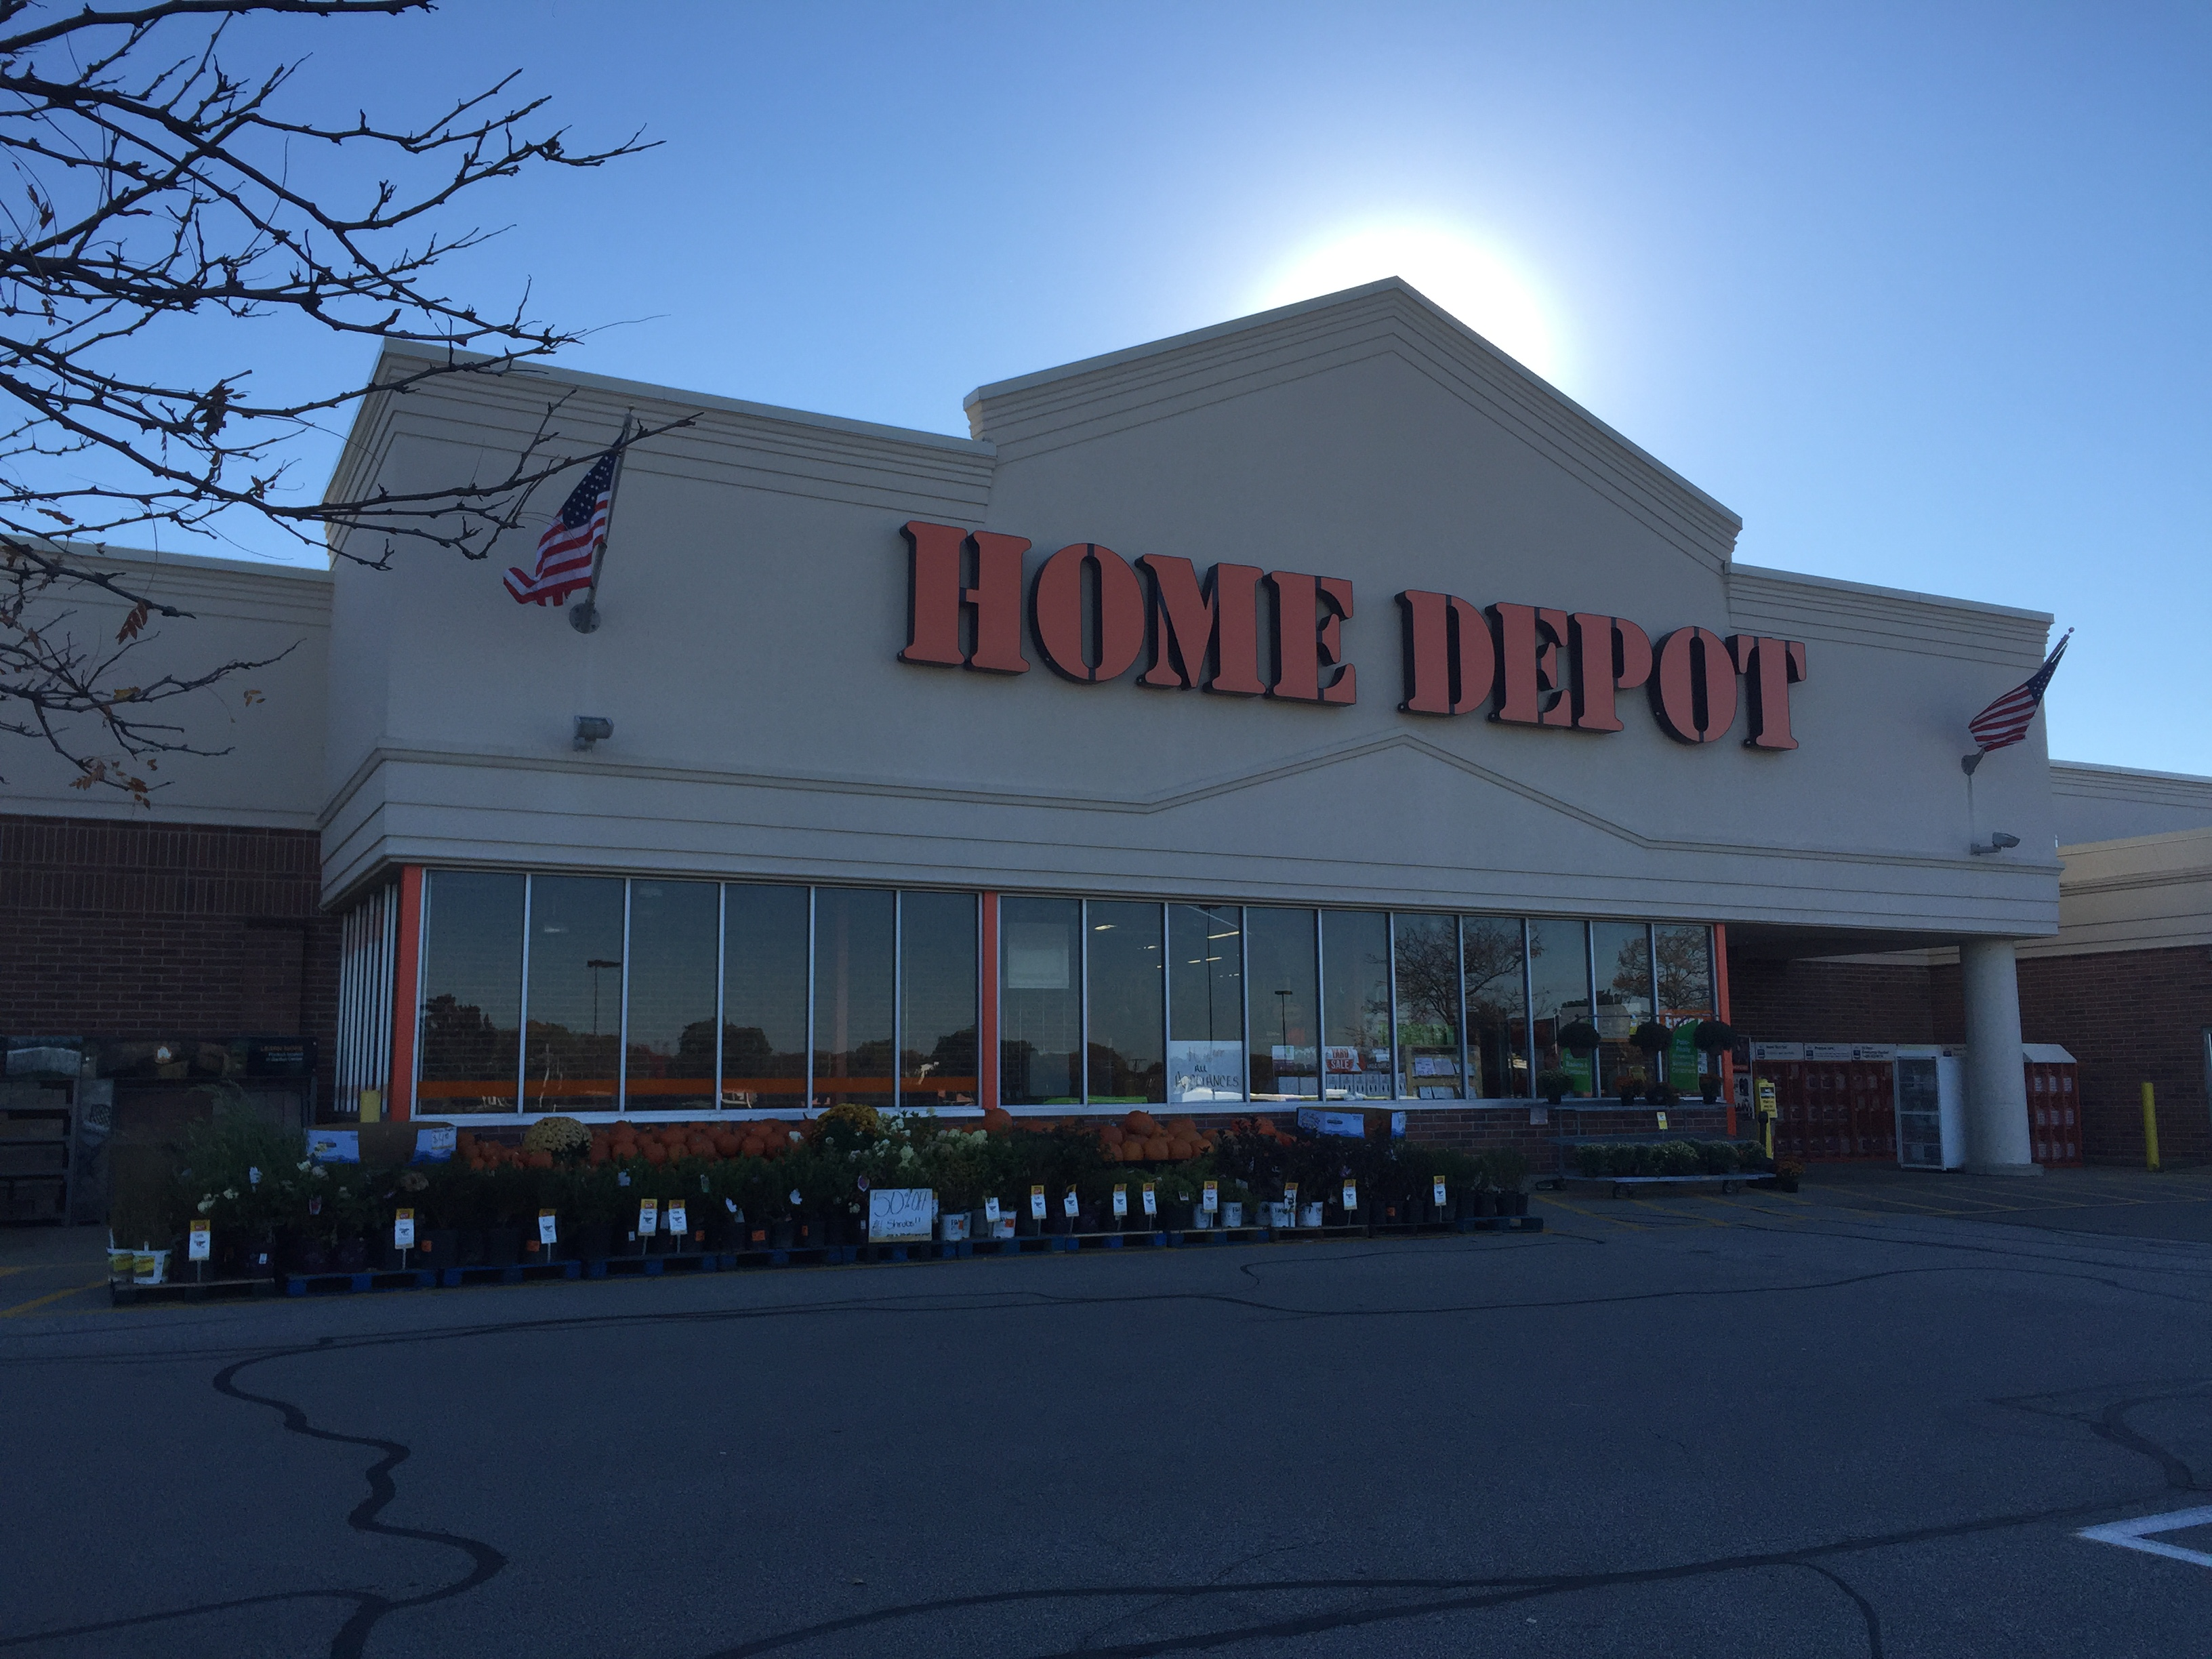 home depot hours saturday the home depot in strongsville oh 44136 852